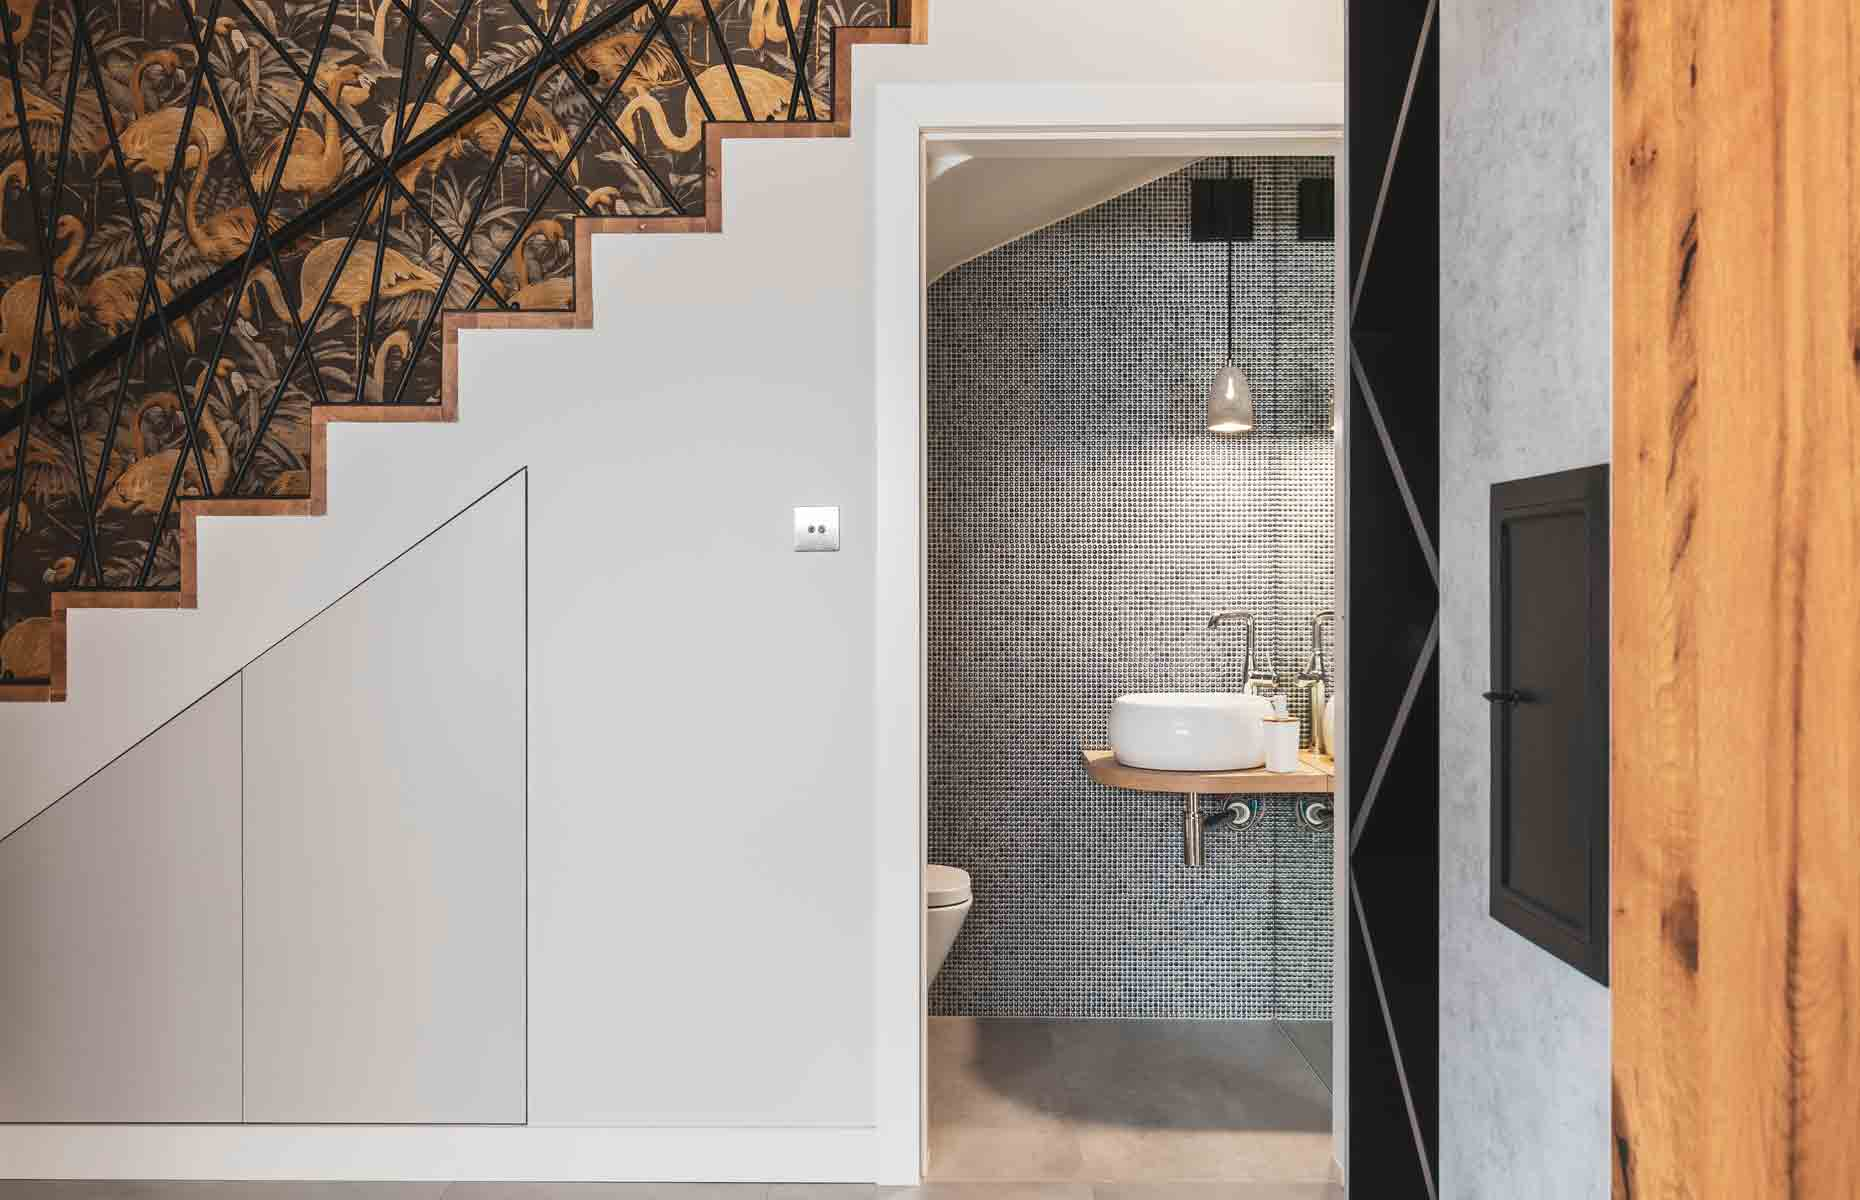 Homes where the only bathroom is downstairs can be a real turn-off for house-hunters. Image: Photographee.eu / Shutterstock